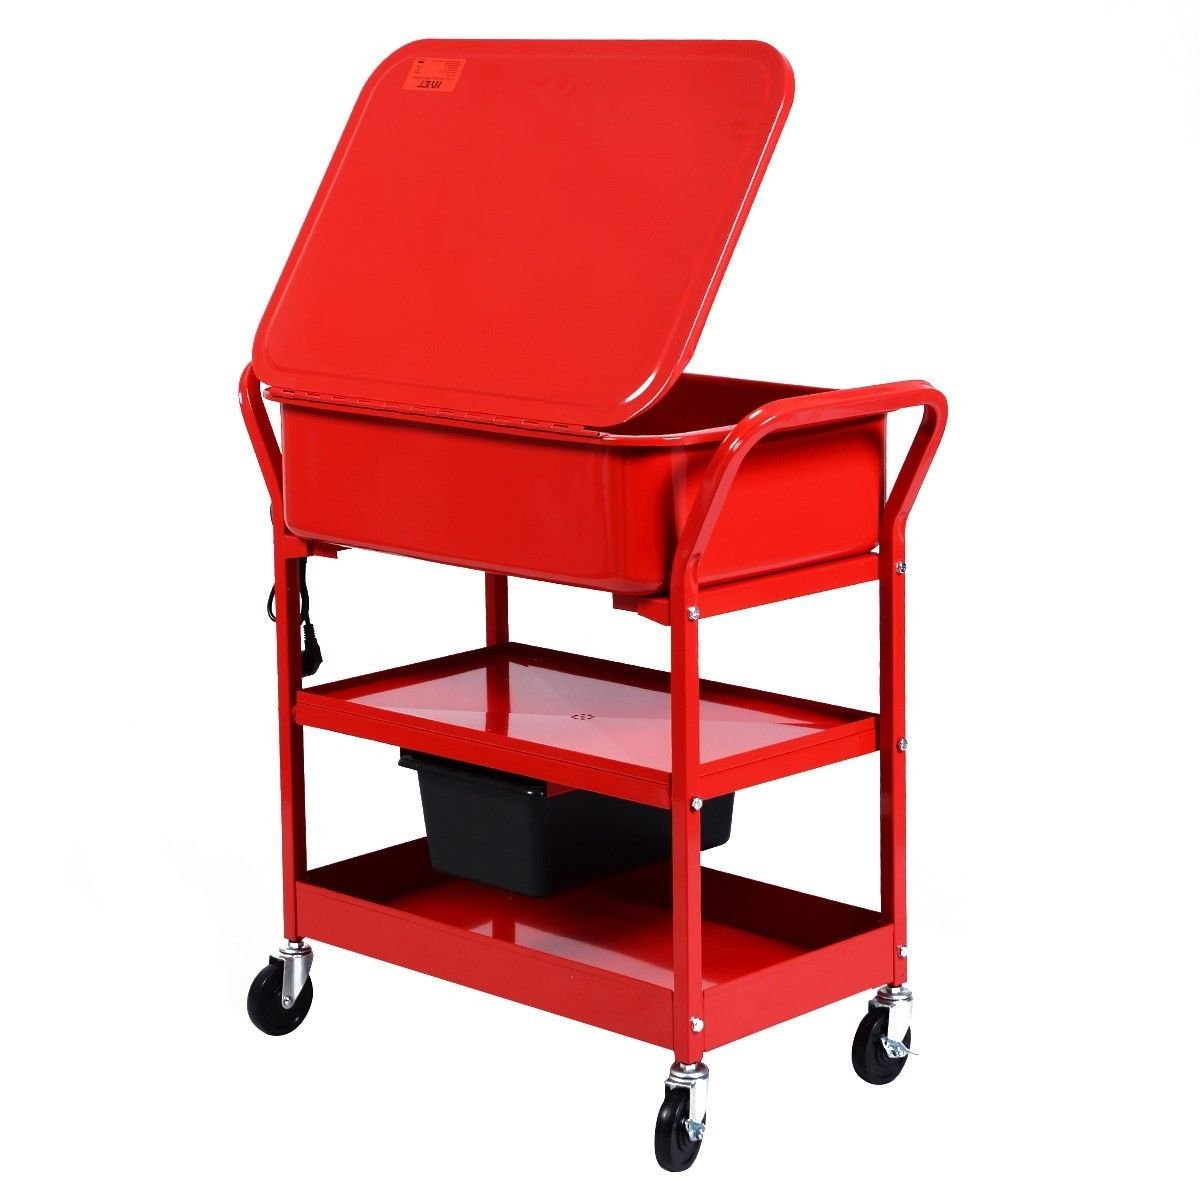 Globe House Products GHP 20-Gallon Max Tank Cacpacity 5.28GPM Flow Rate Red Mobile Parts Washer Cart by Globe House Products (Image #3)